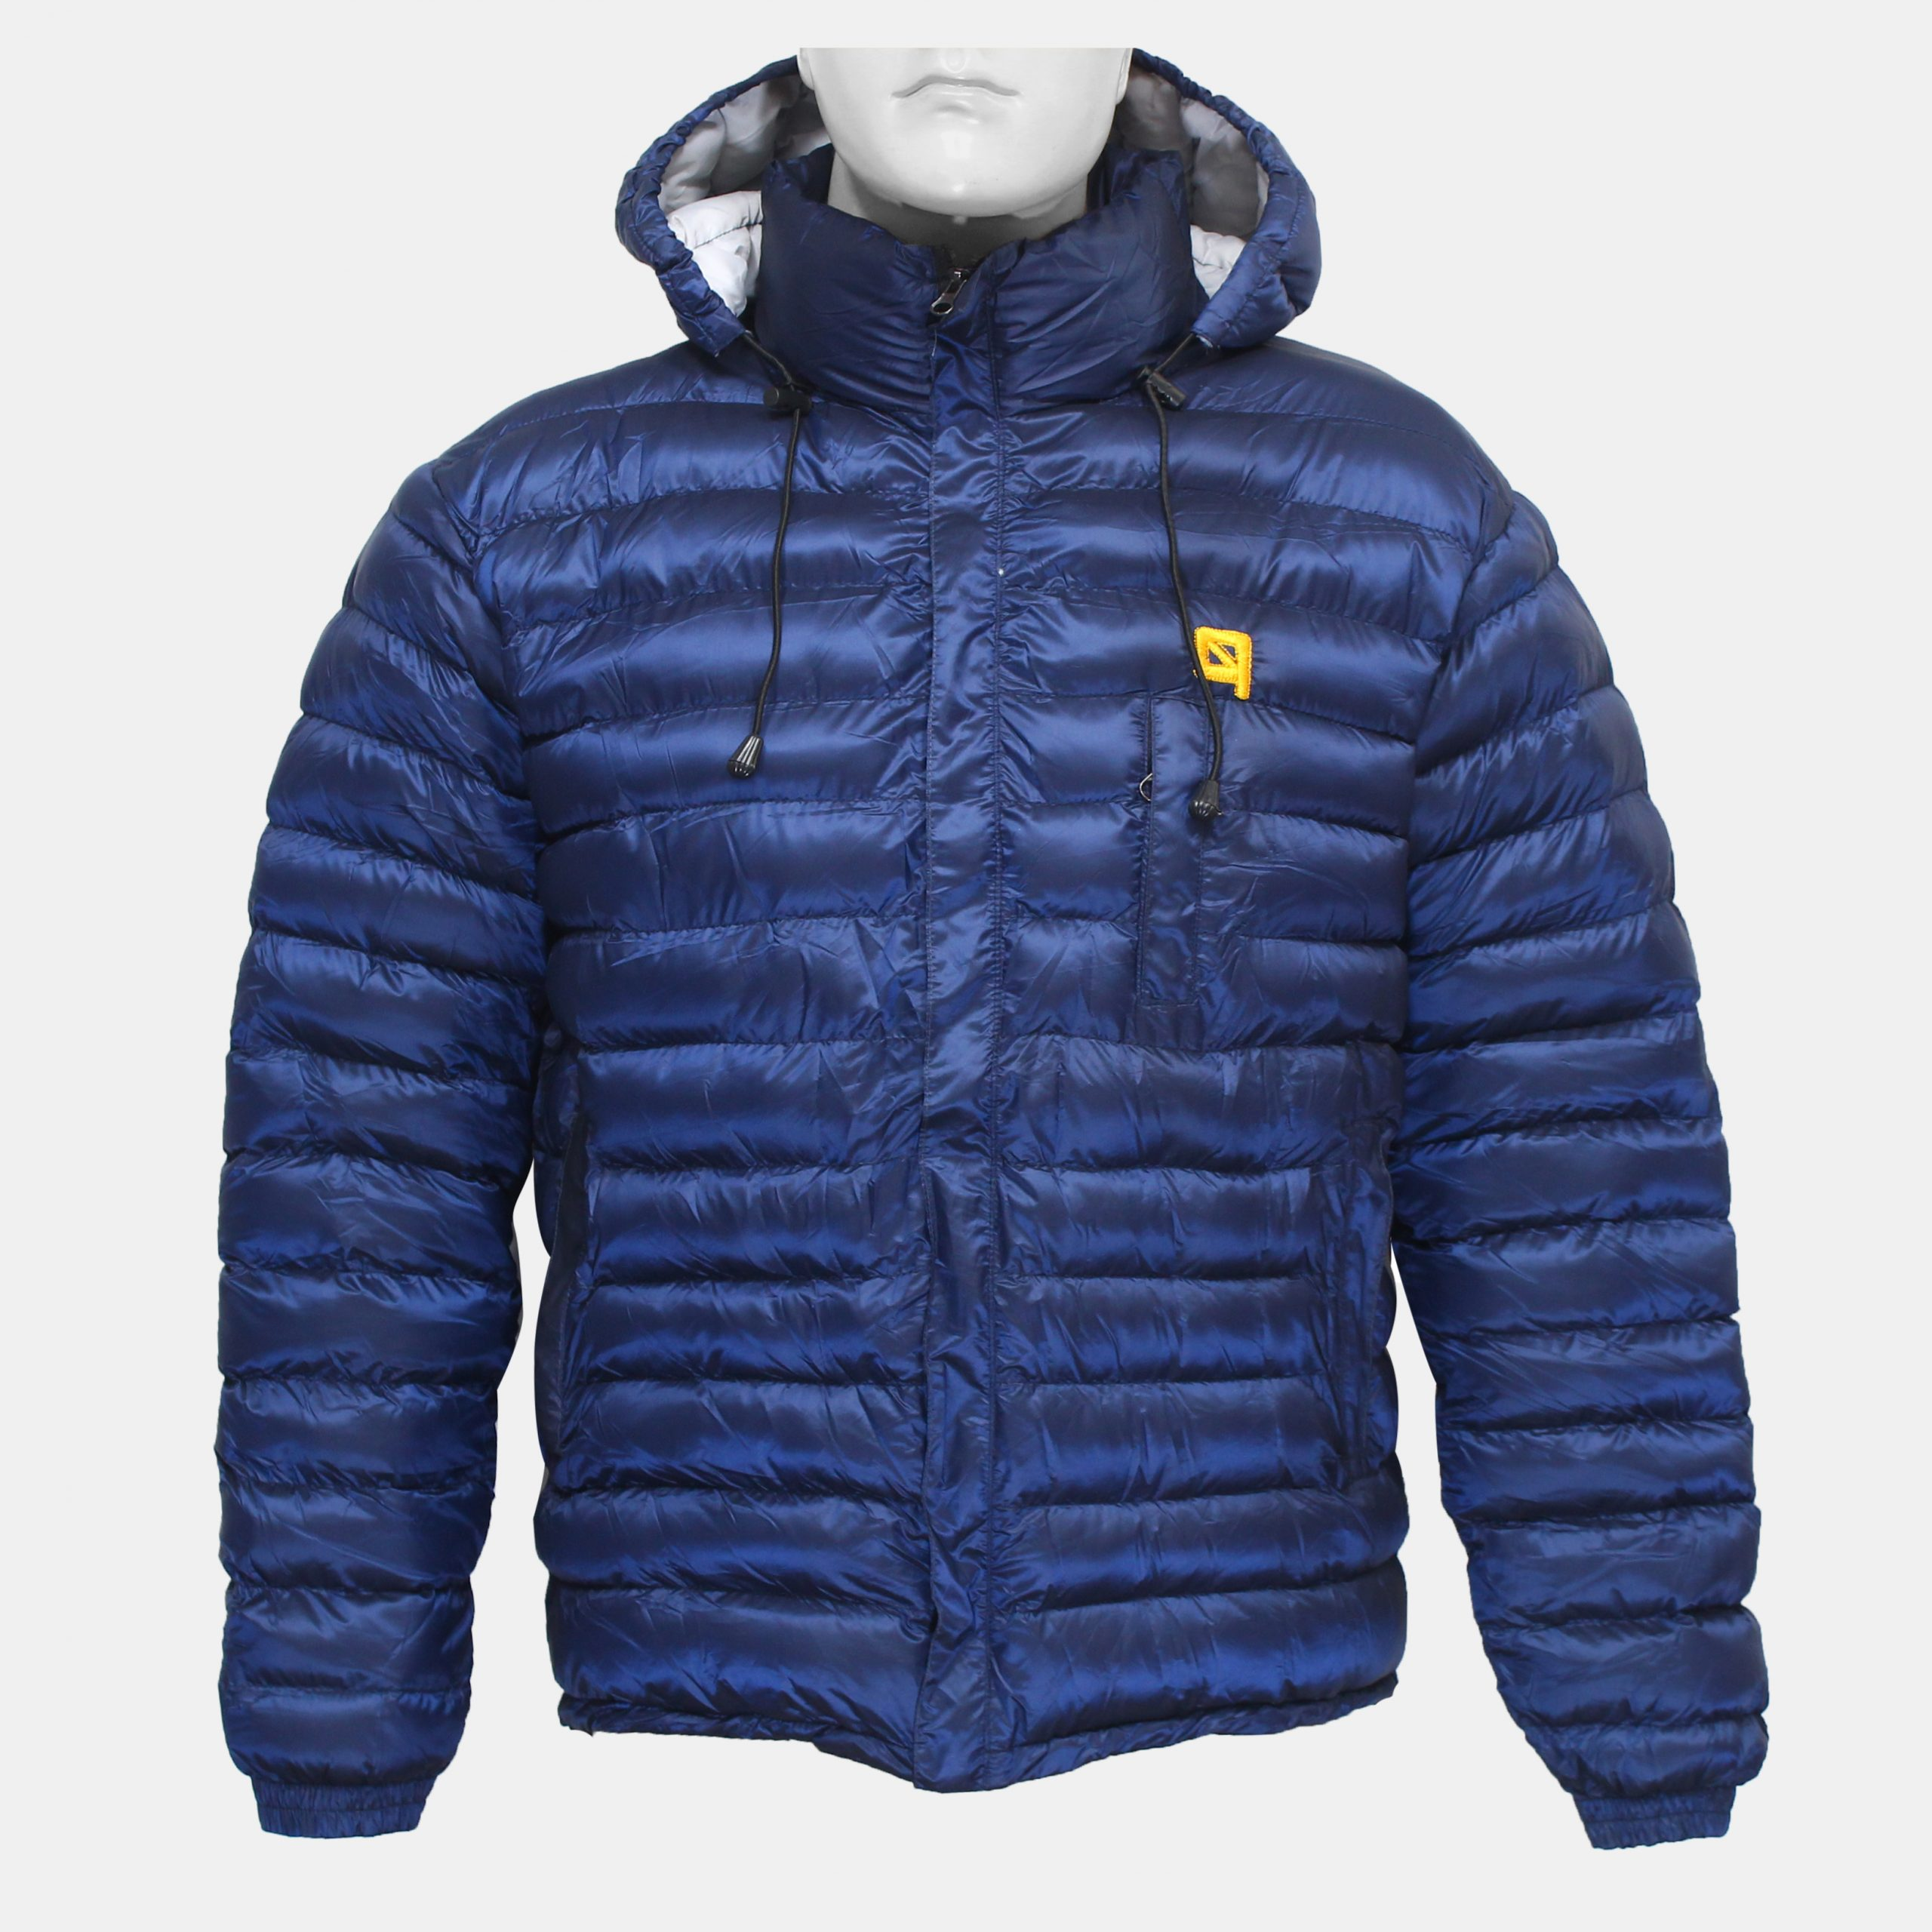 Winter Silicon Jacket